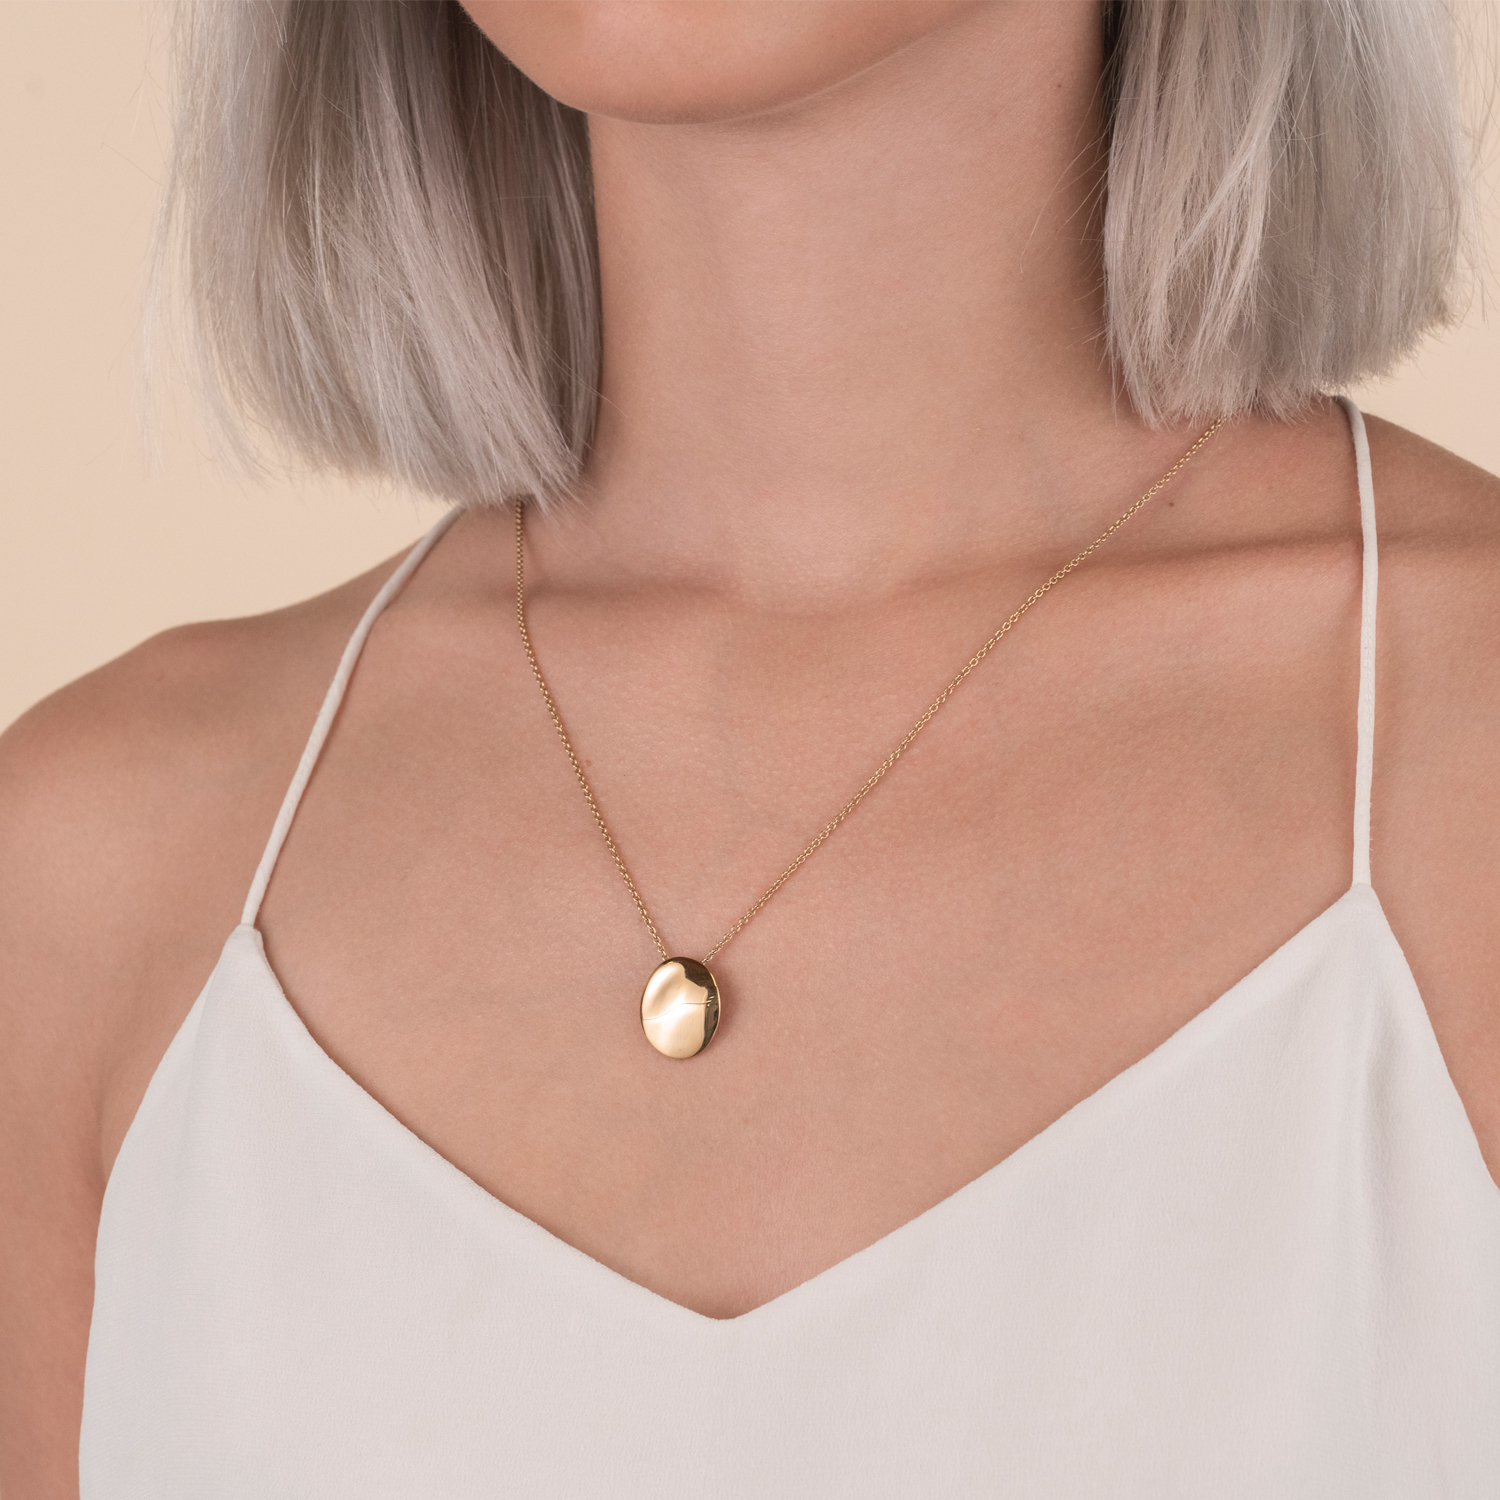 Oval-Necklace-1-PP.jpg